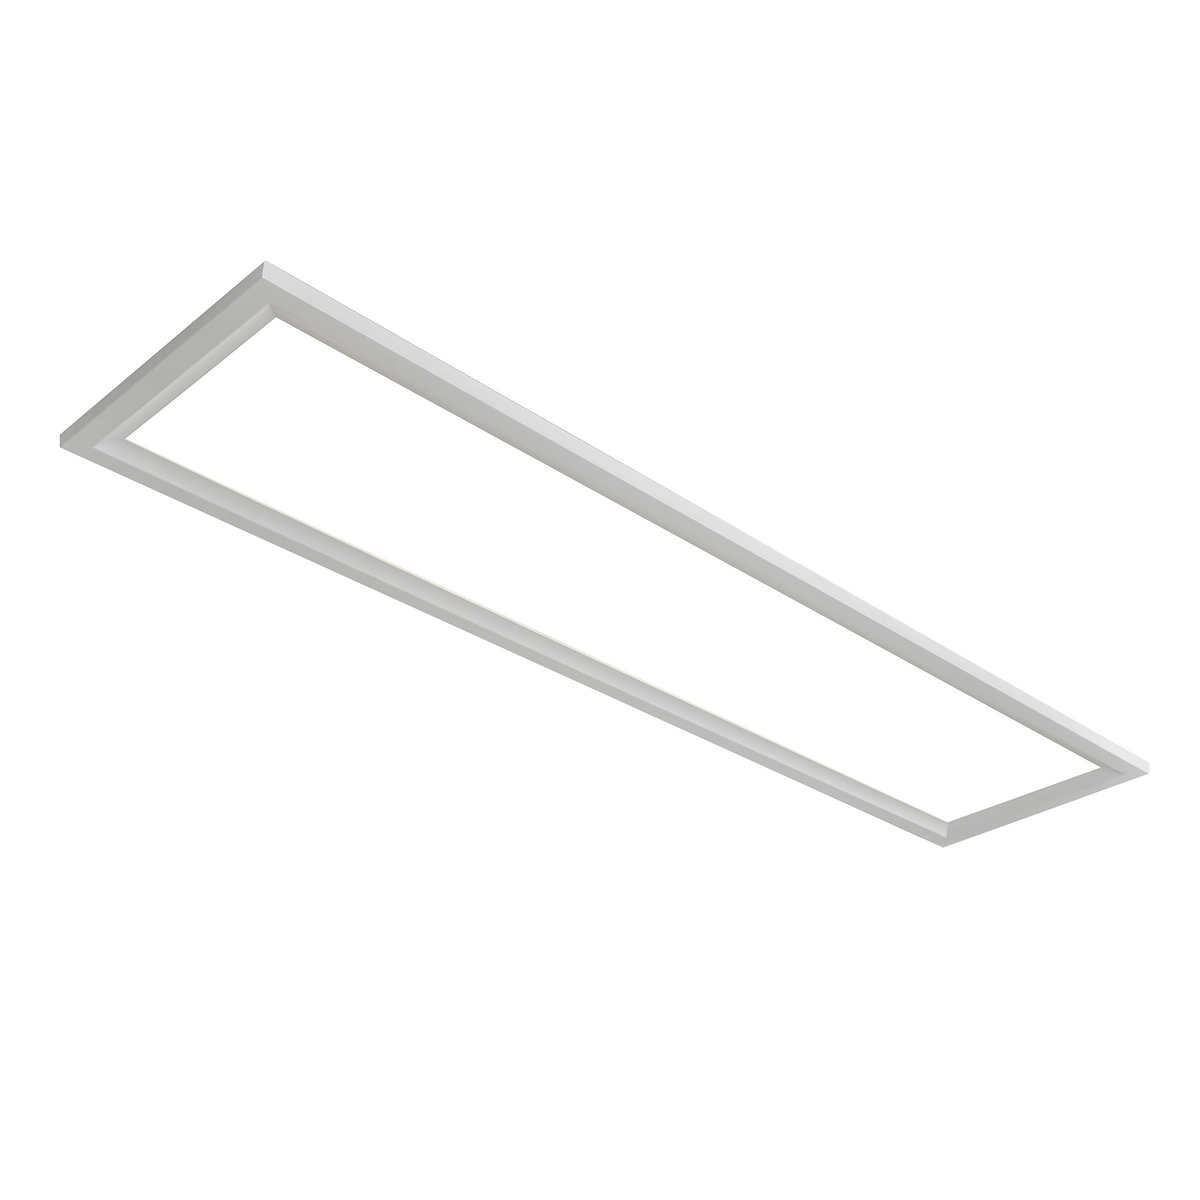 Skylight Flat Panel By Artika